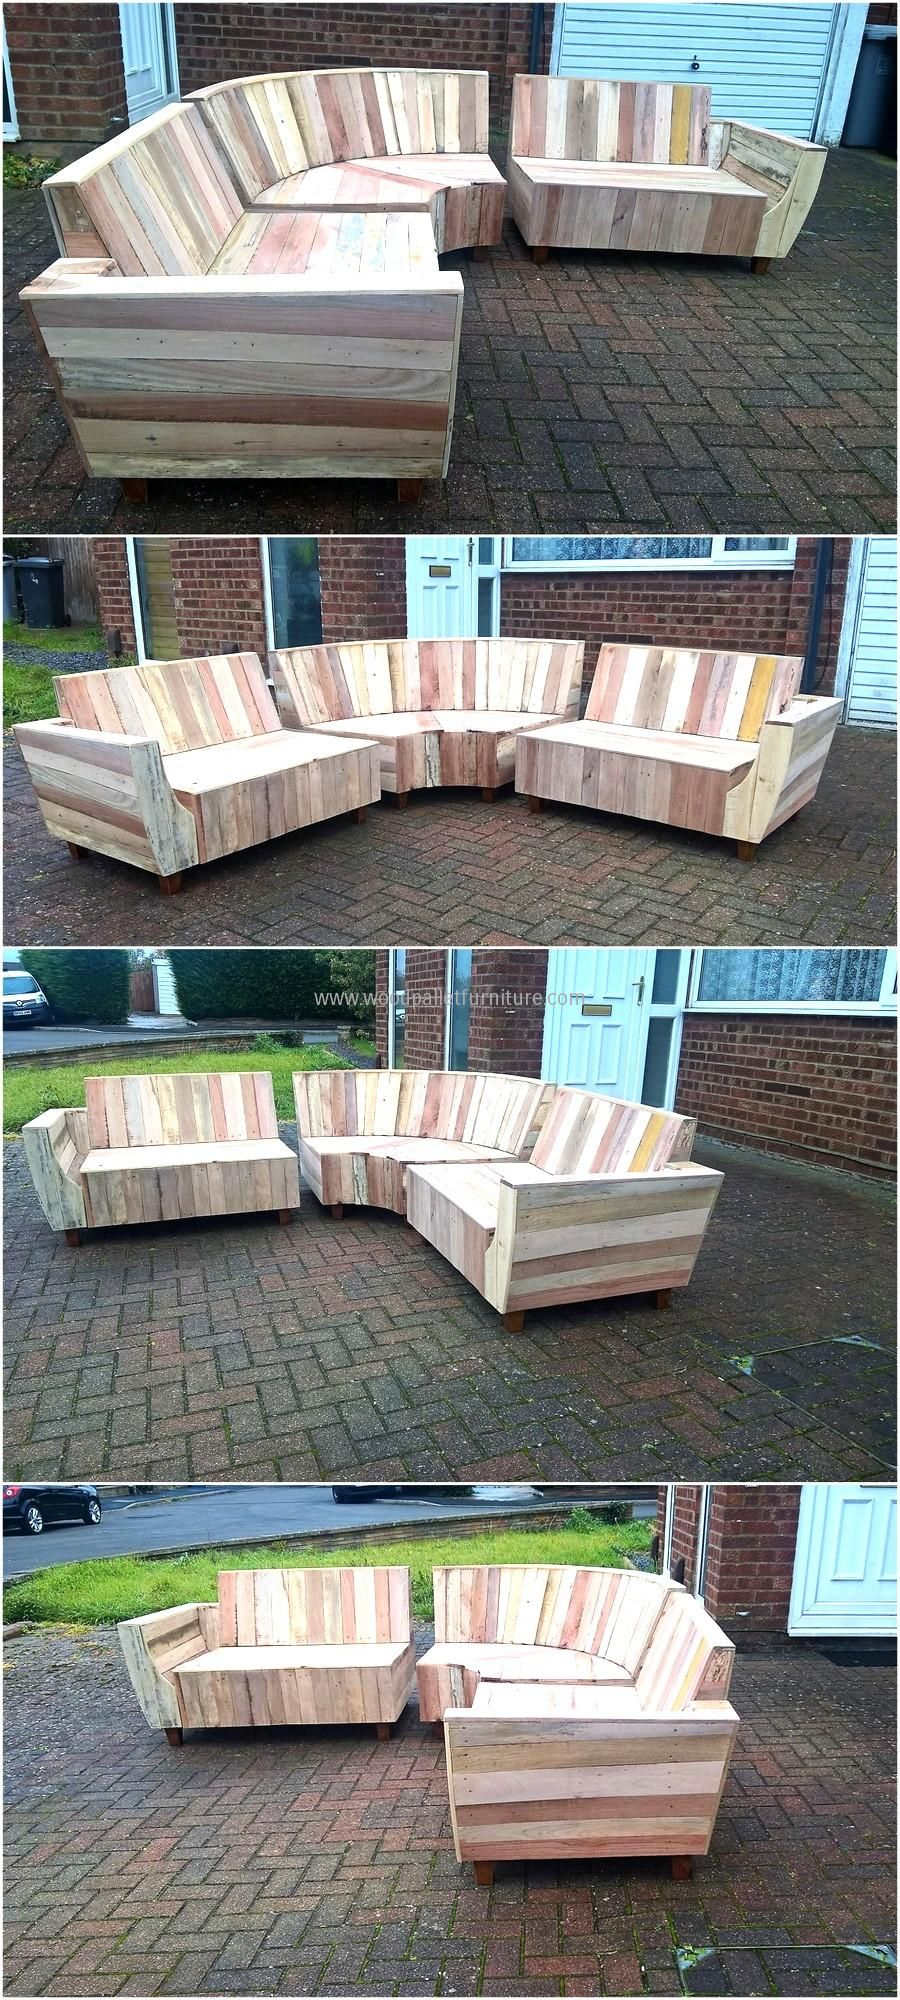 Arredo Giardino In Pallet outdoor couch set made with pallets | arredamento esterno